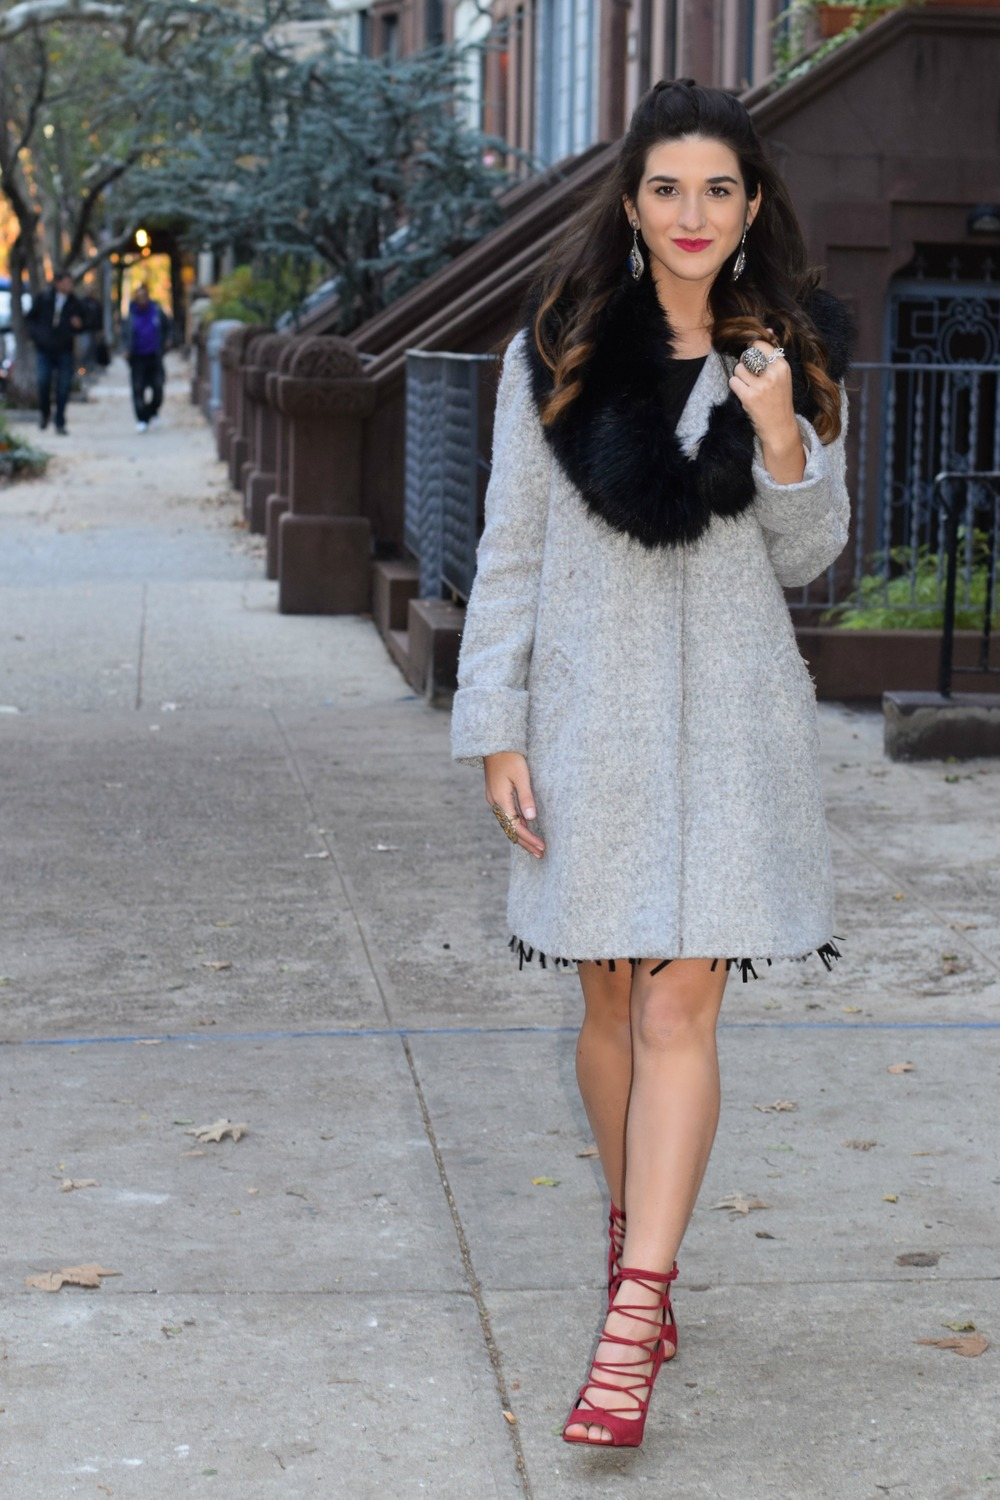 Dripping In Diamonds Elahn Jewels Louboutins & Love Fashion Blog Esther Santer NYC Street Style Blogger Black Fur Stole Earrings Jewelry Peacoat Grey Coat Winter Wear Shopping Beauty Chic Rings Red Sandals Heels Inspo Hair Inspiration OOTD Outfit Zara.jpg